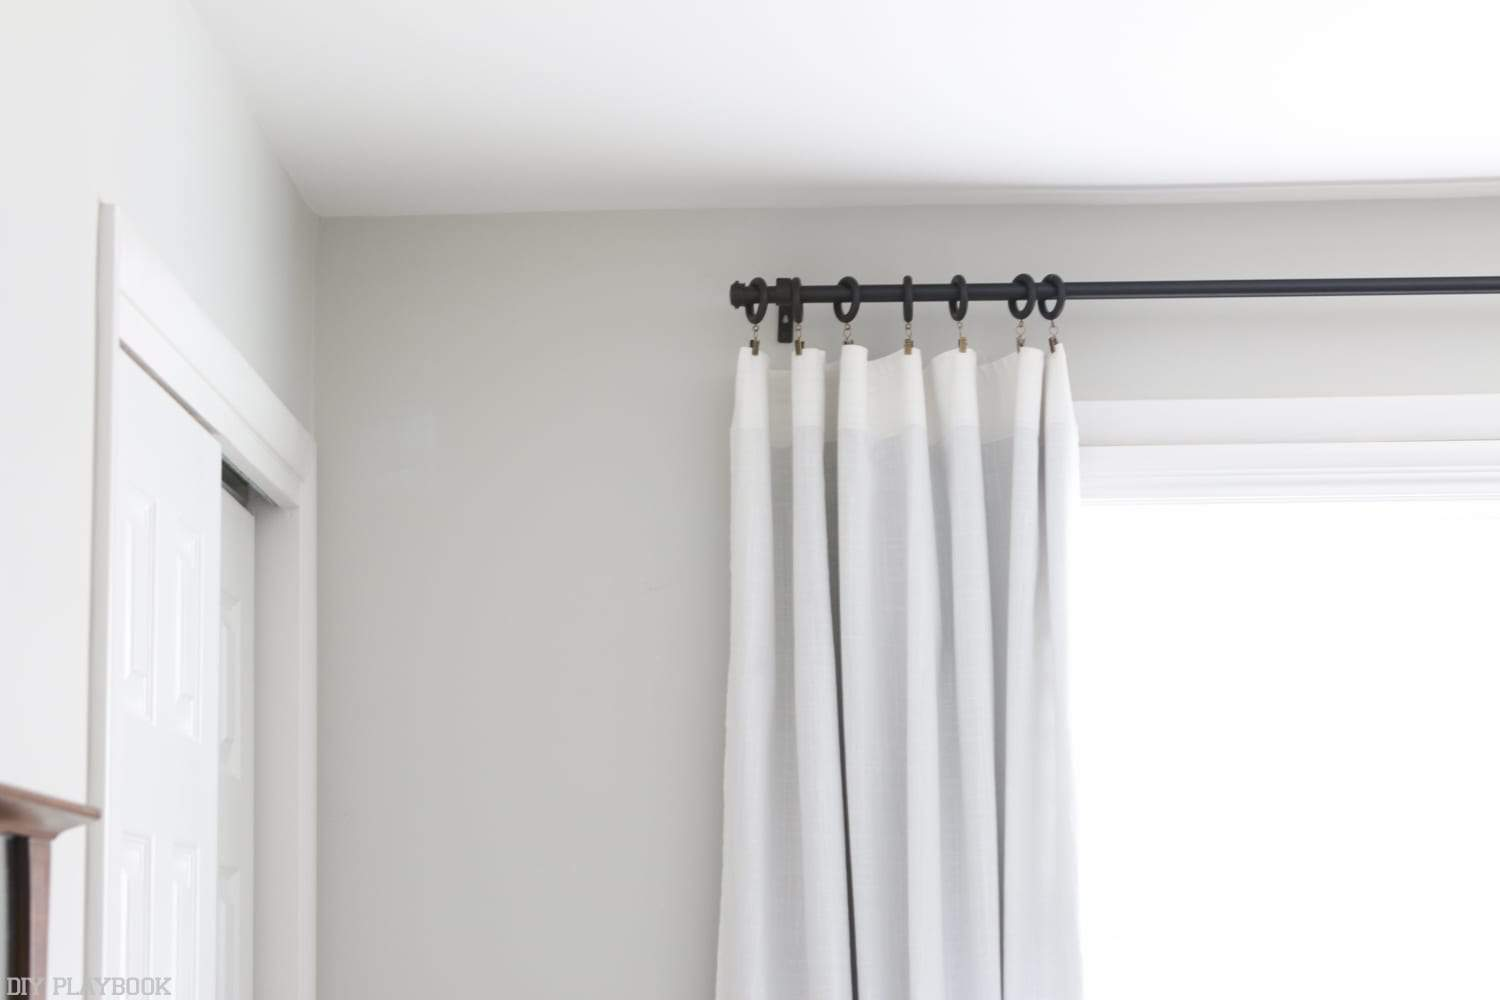 Invisible Curtain Rod Holders Fanzyzone